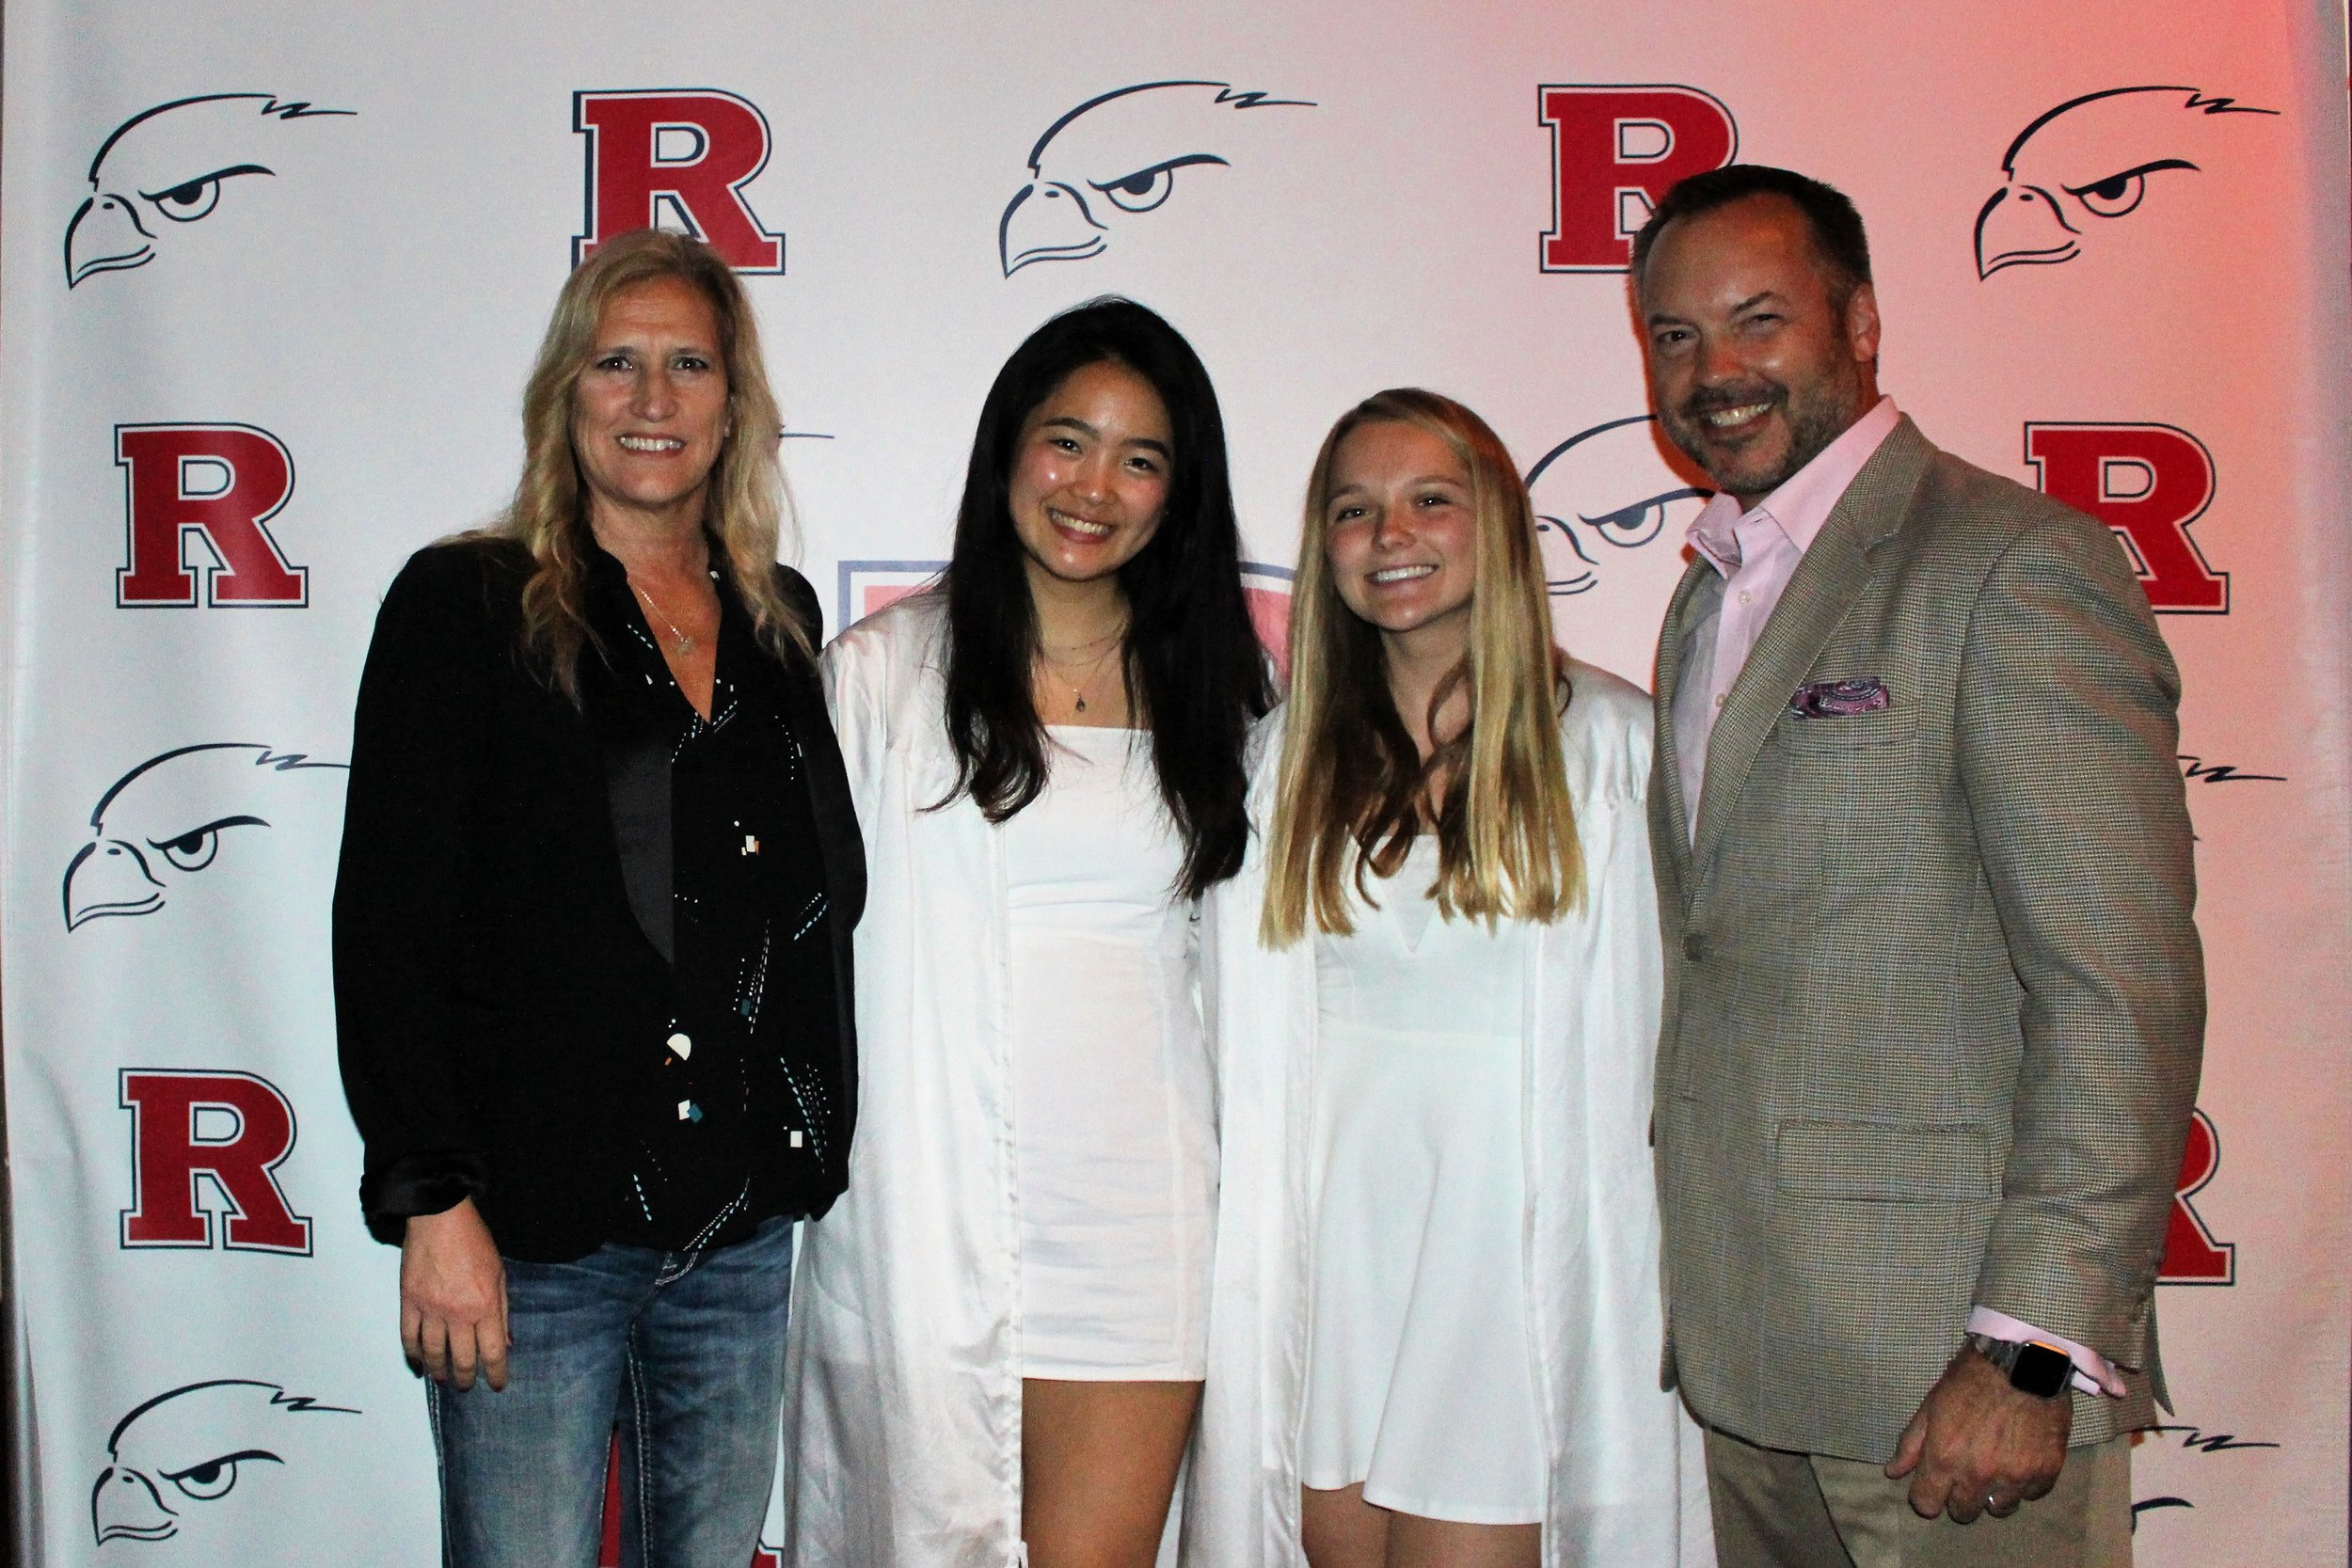 Redondo Union High School scholarship winners for 2019 are (L-R) Tiffany Yin, second from left and Ryan Cartee, second from right. Also pictured are (L) Karen Nowicki and (R) Ryan Nowicki.